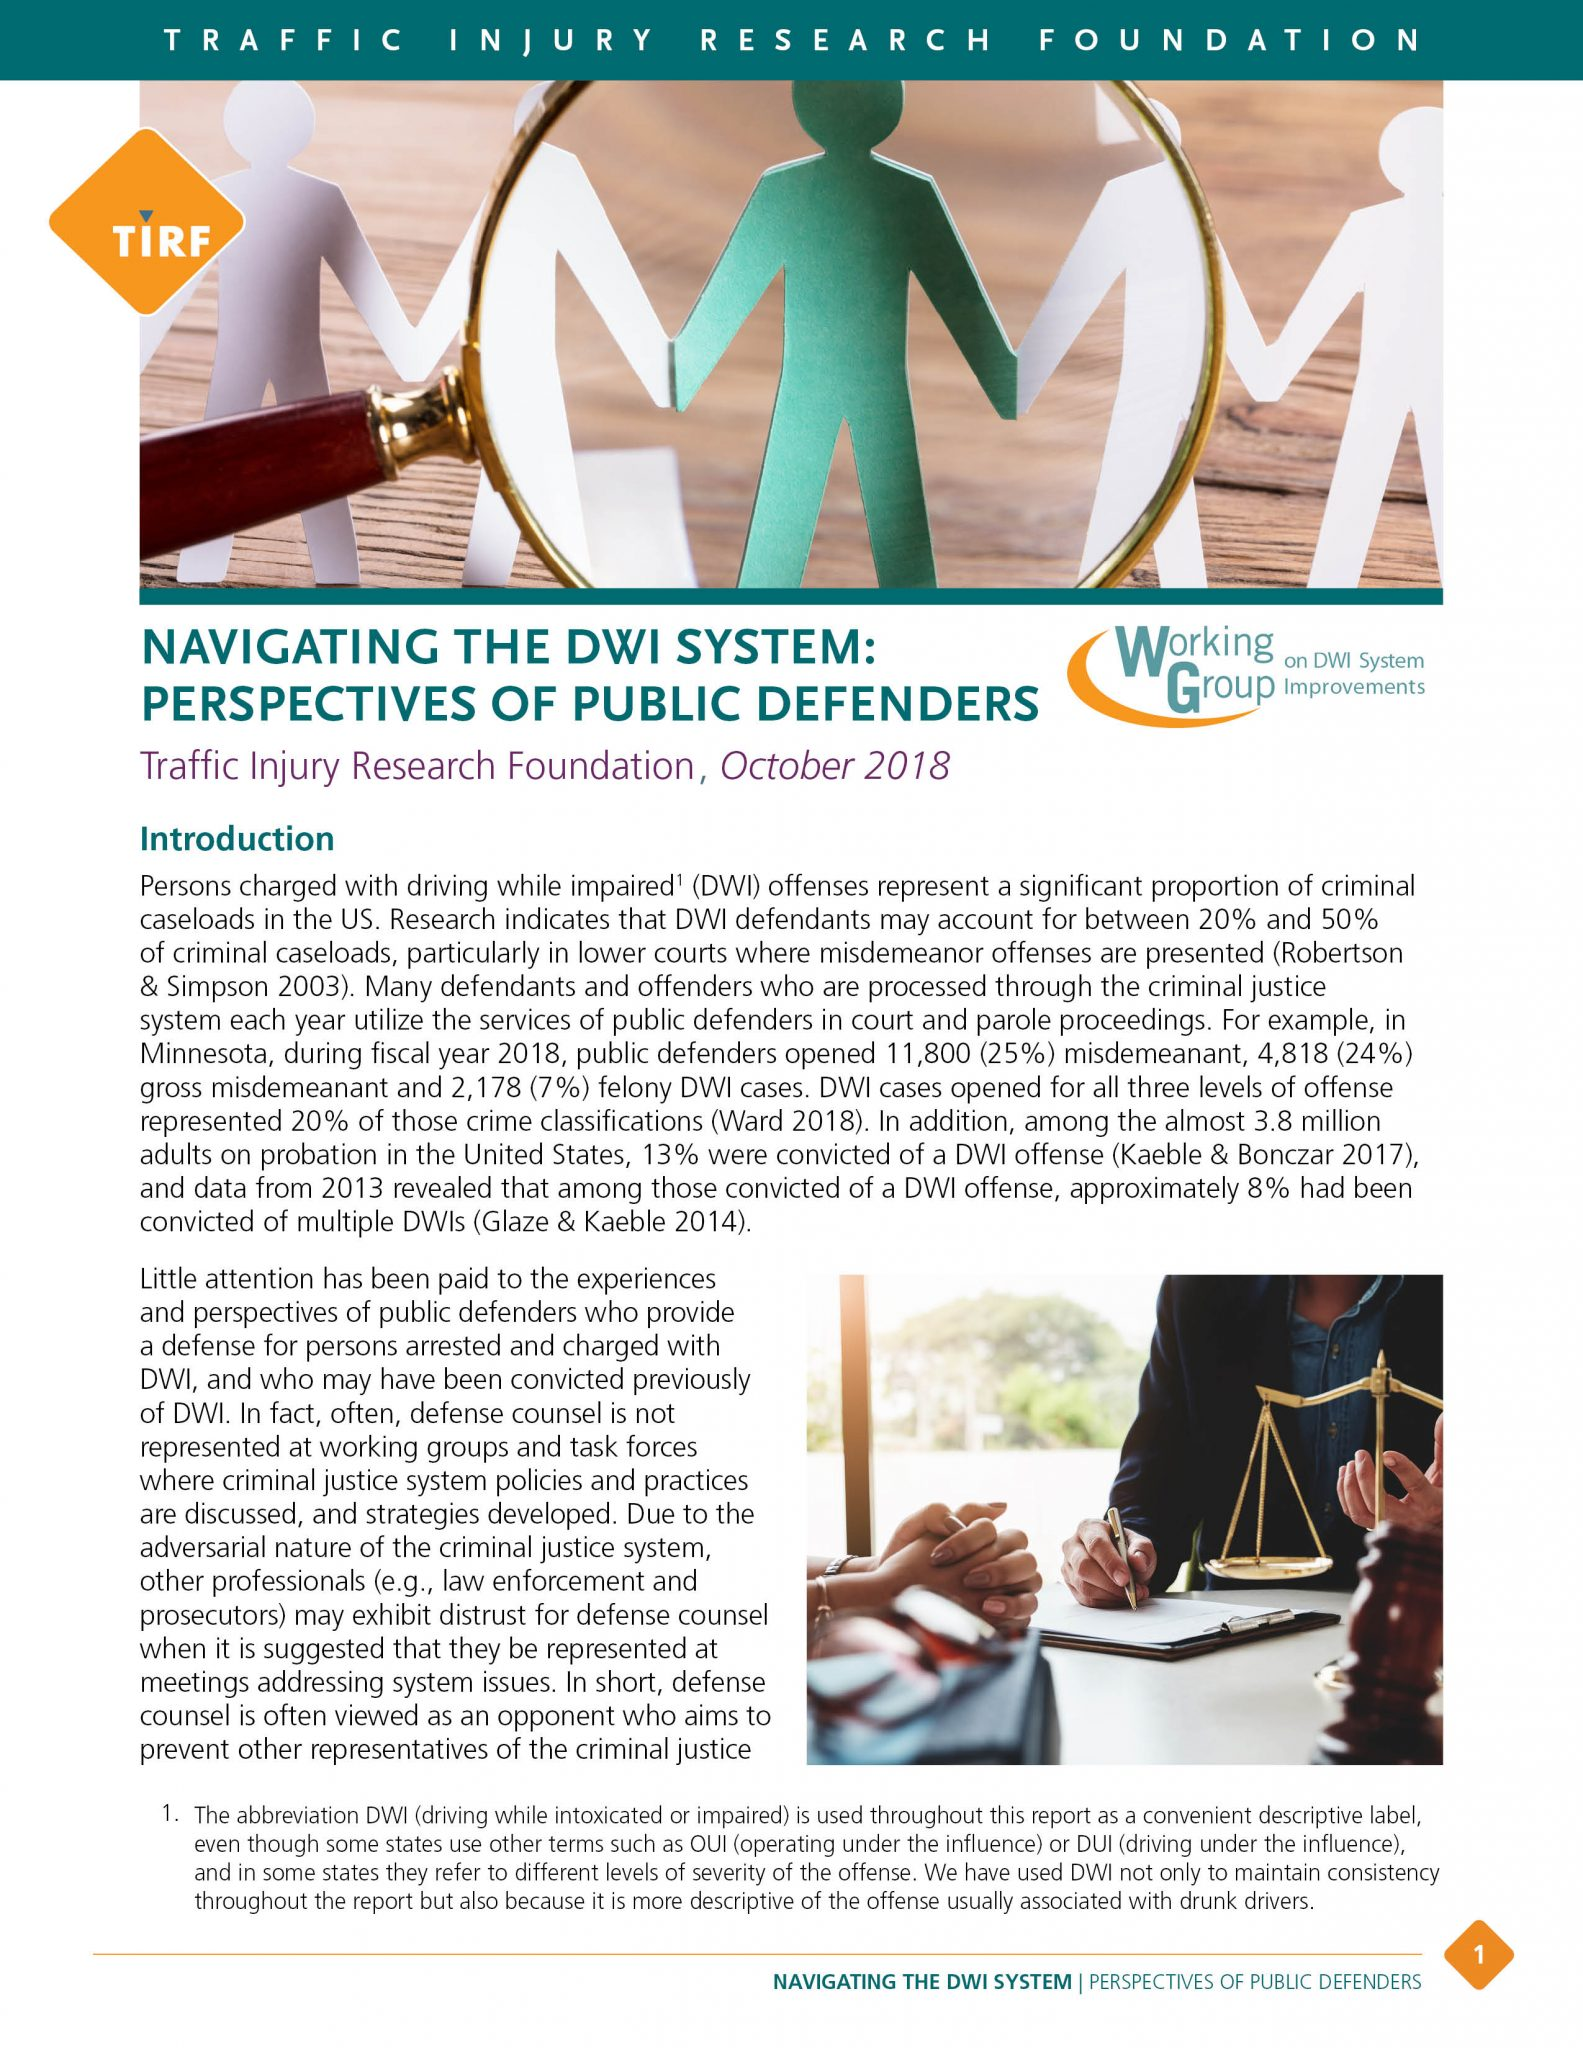 WG 2017 – Navigating the DWI System Perspectives of Public Defenders